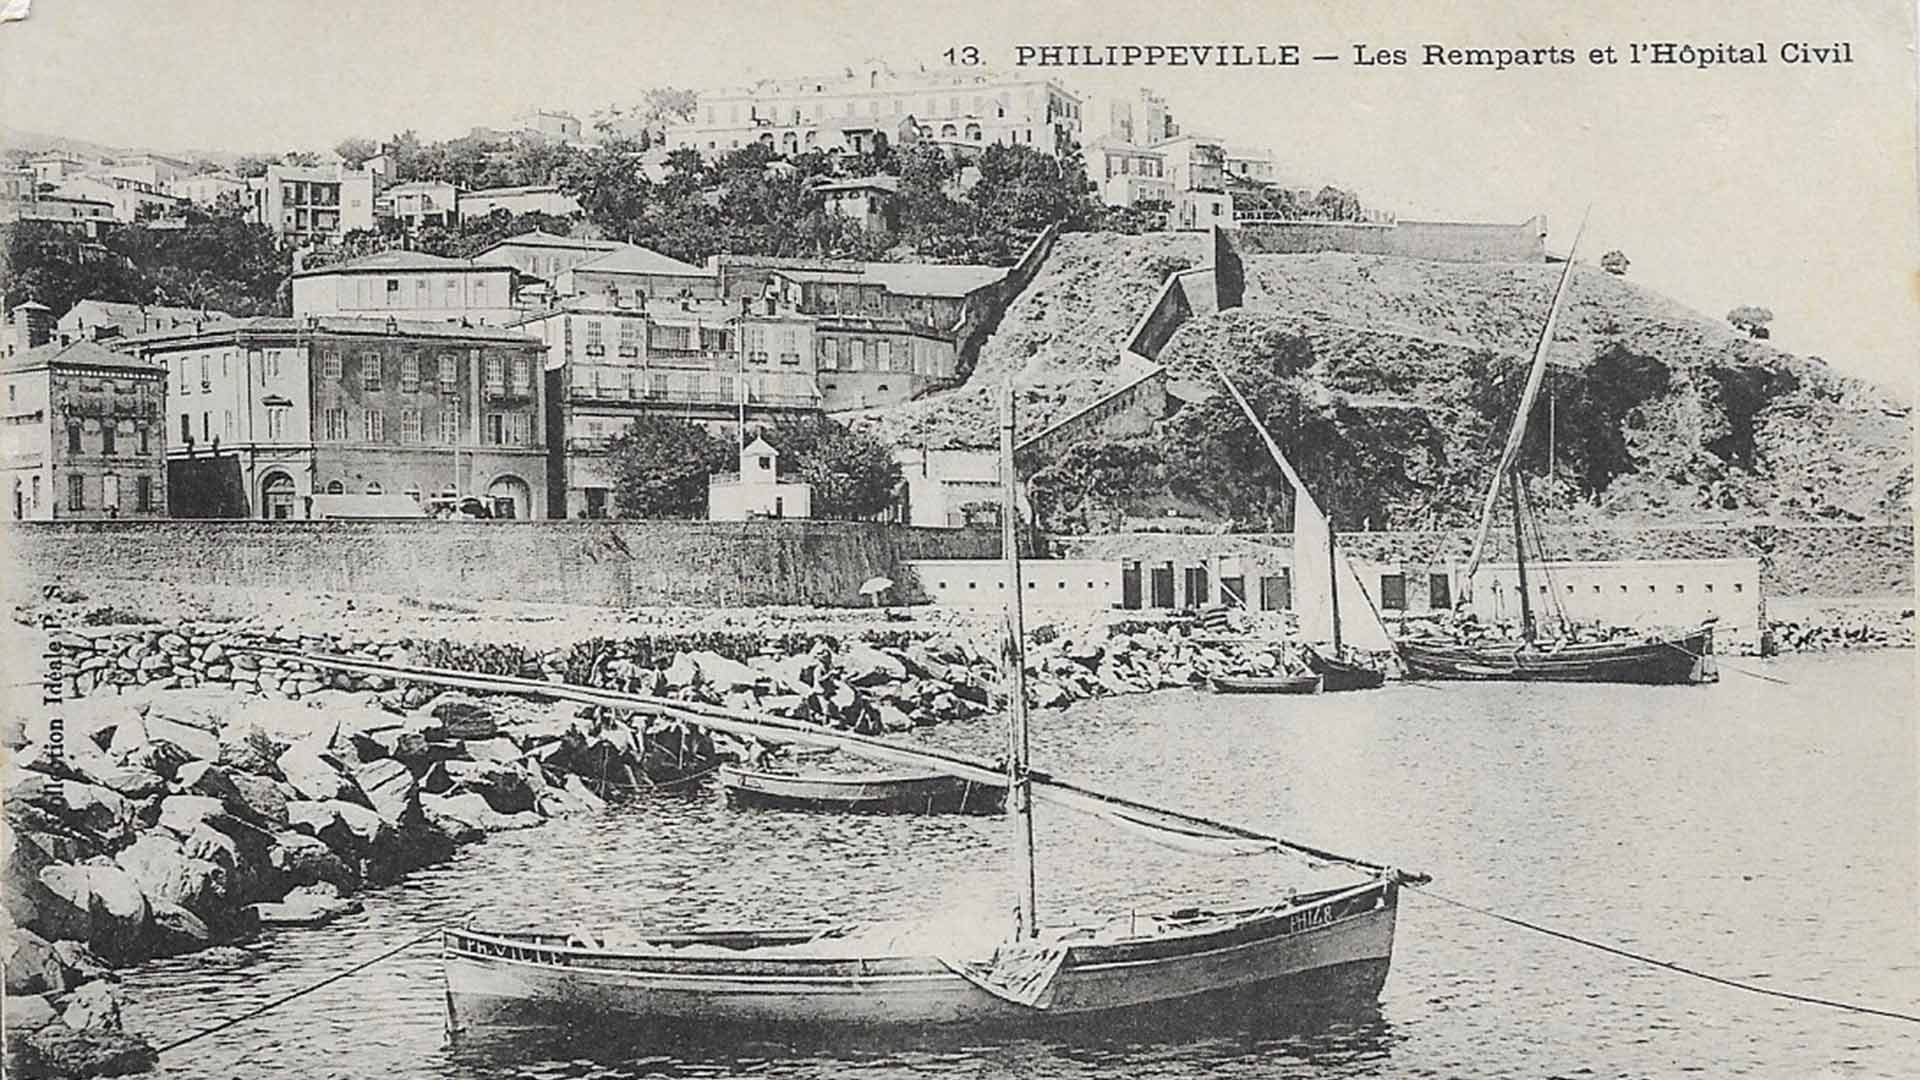 Philippeville-remparts-hopital